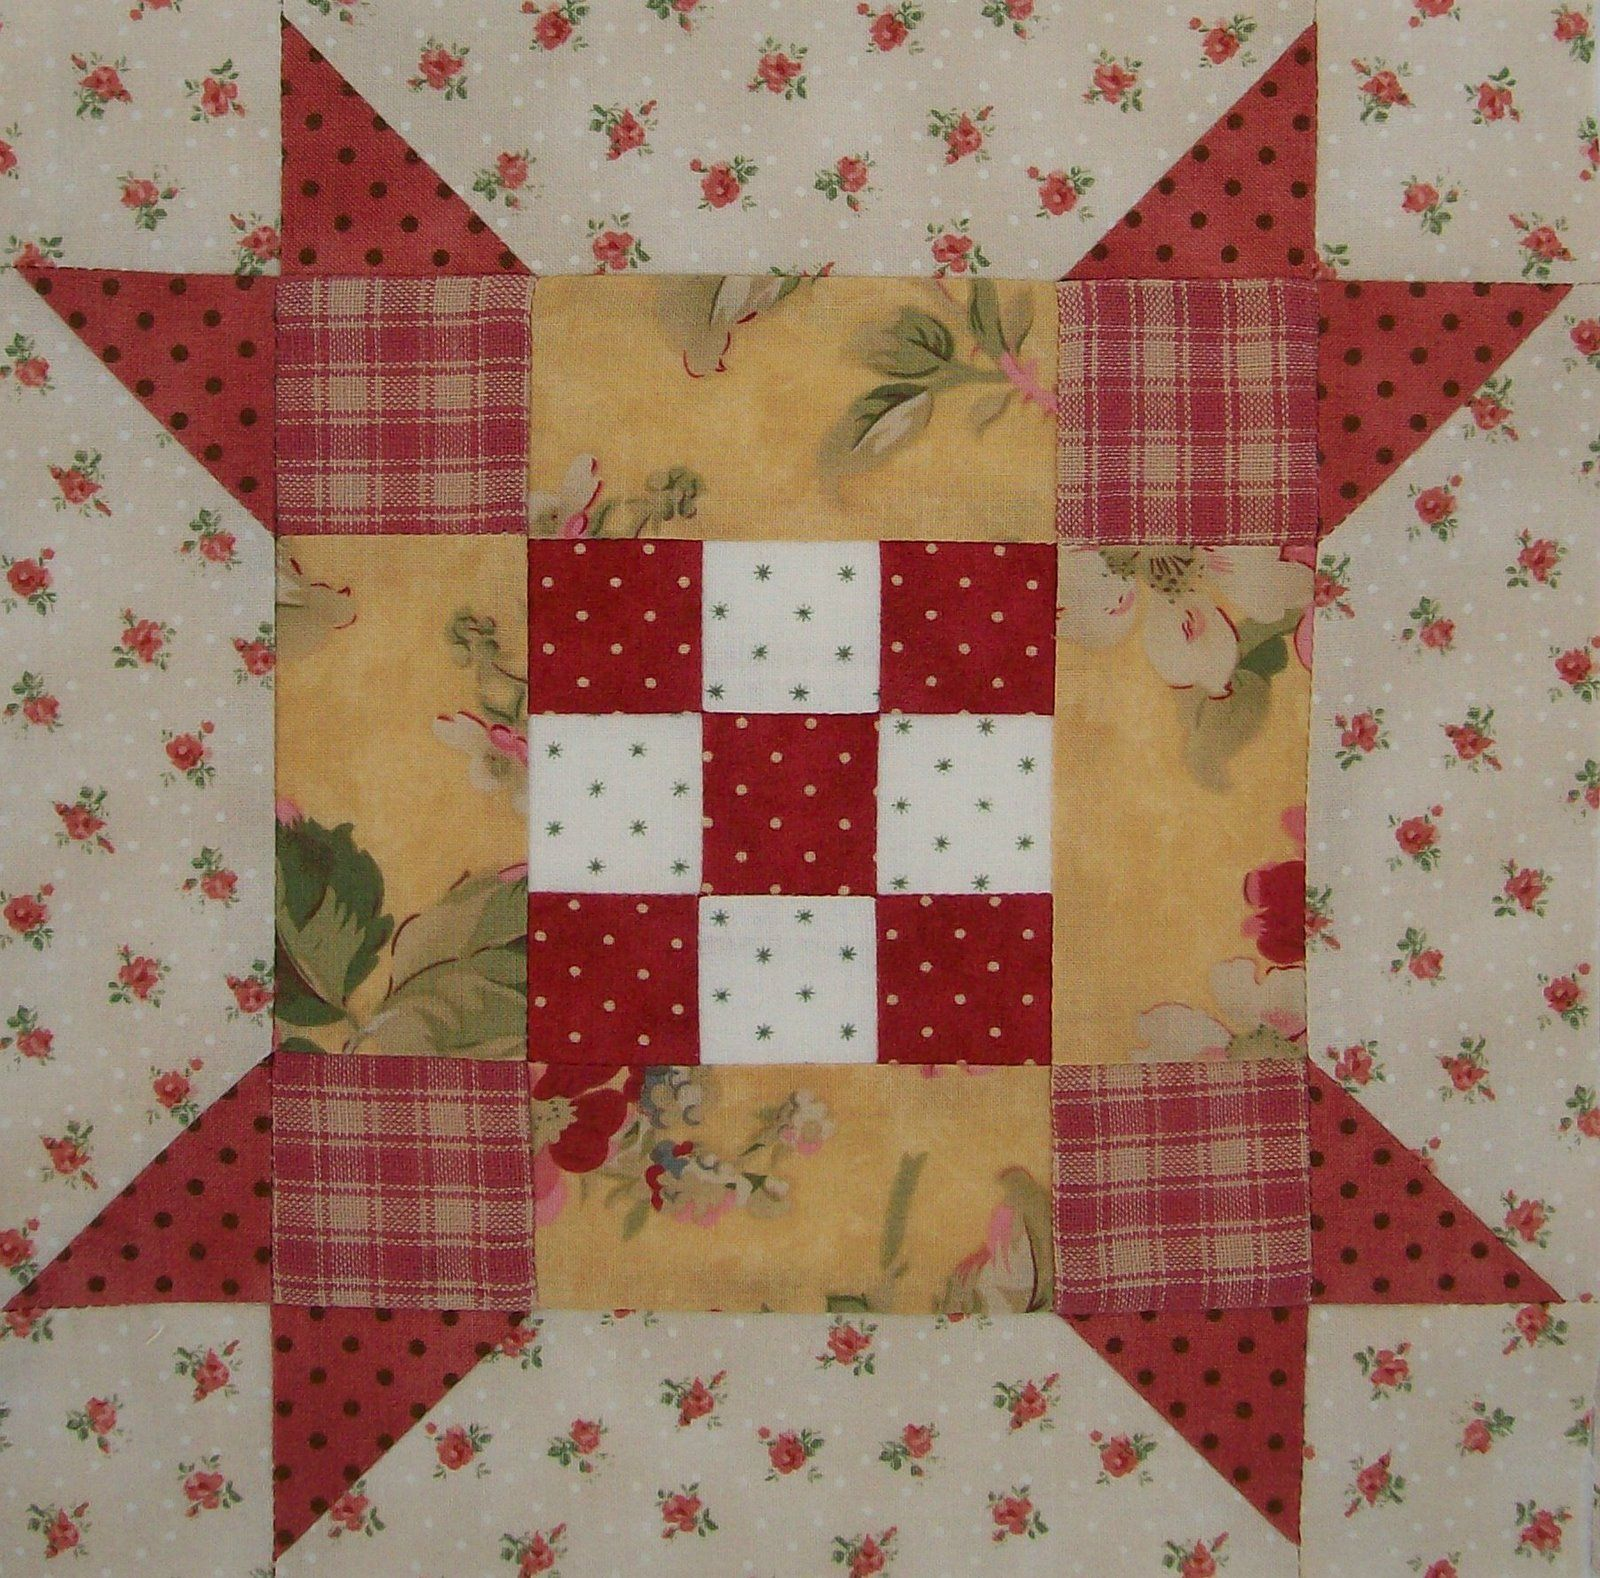 Pin By Pam Weiss On Quilting パッチワーク